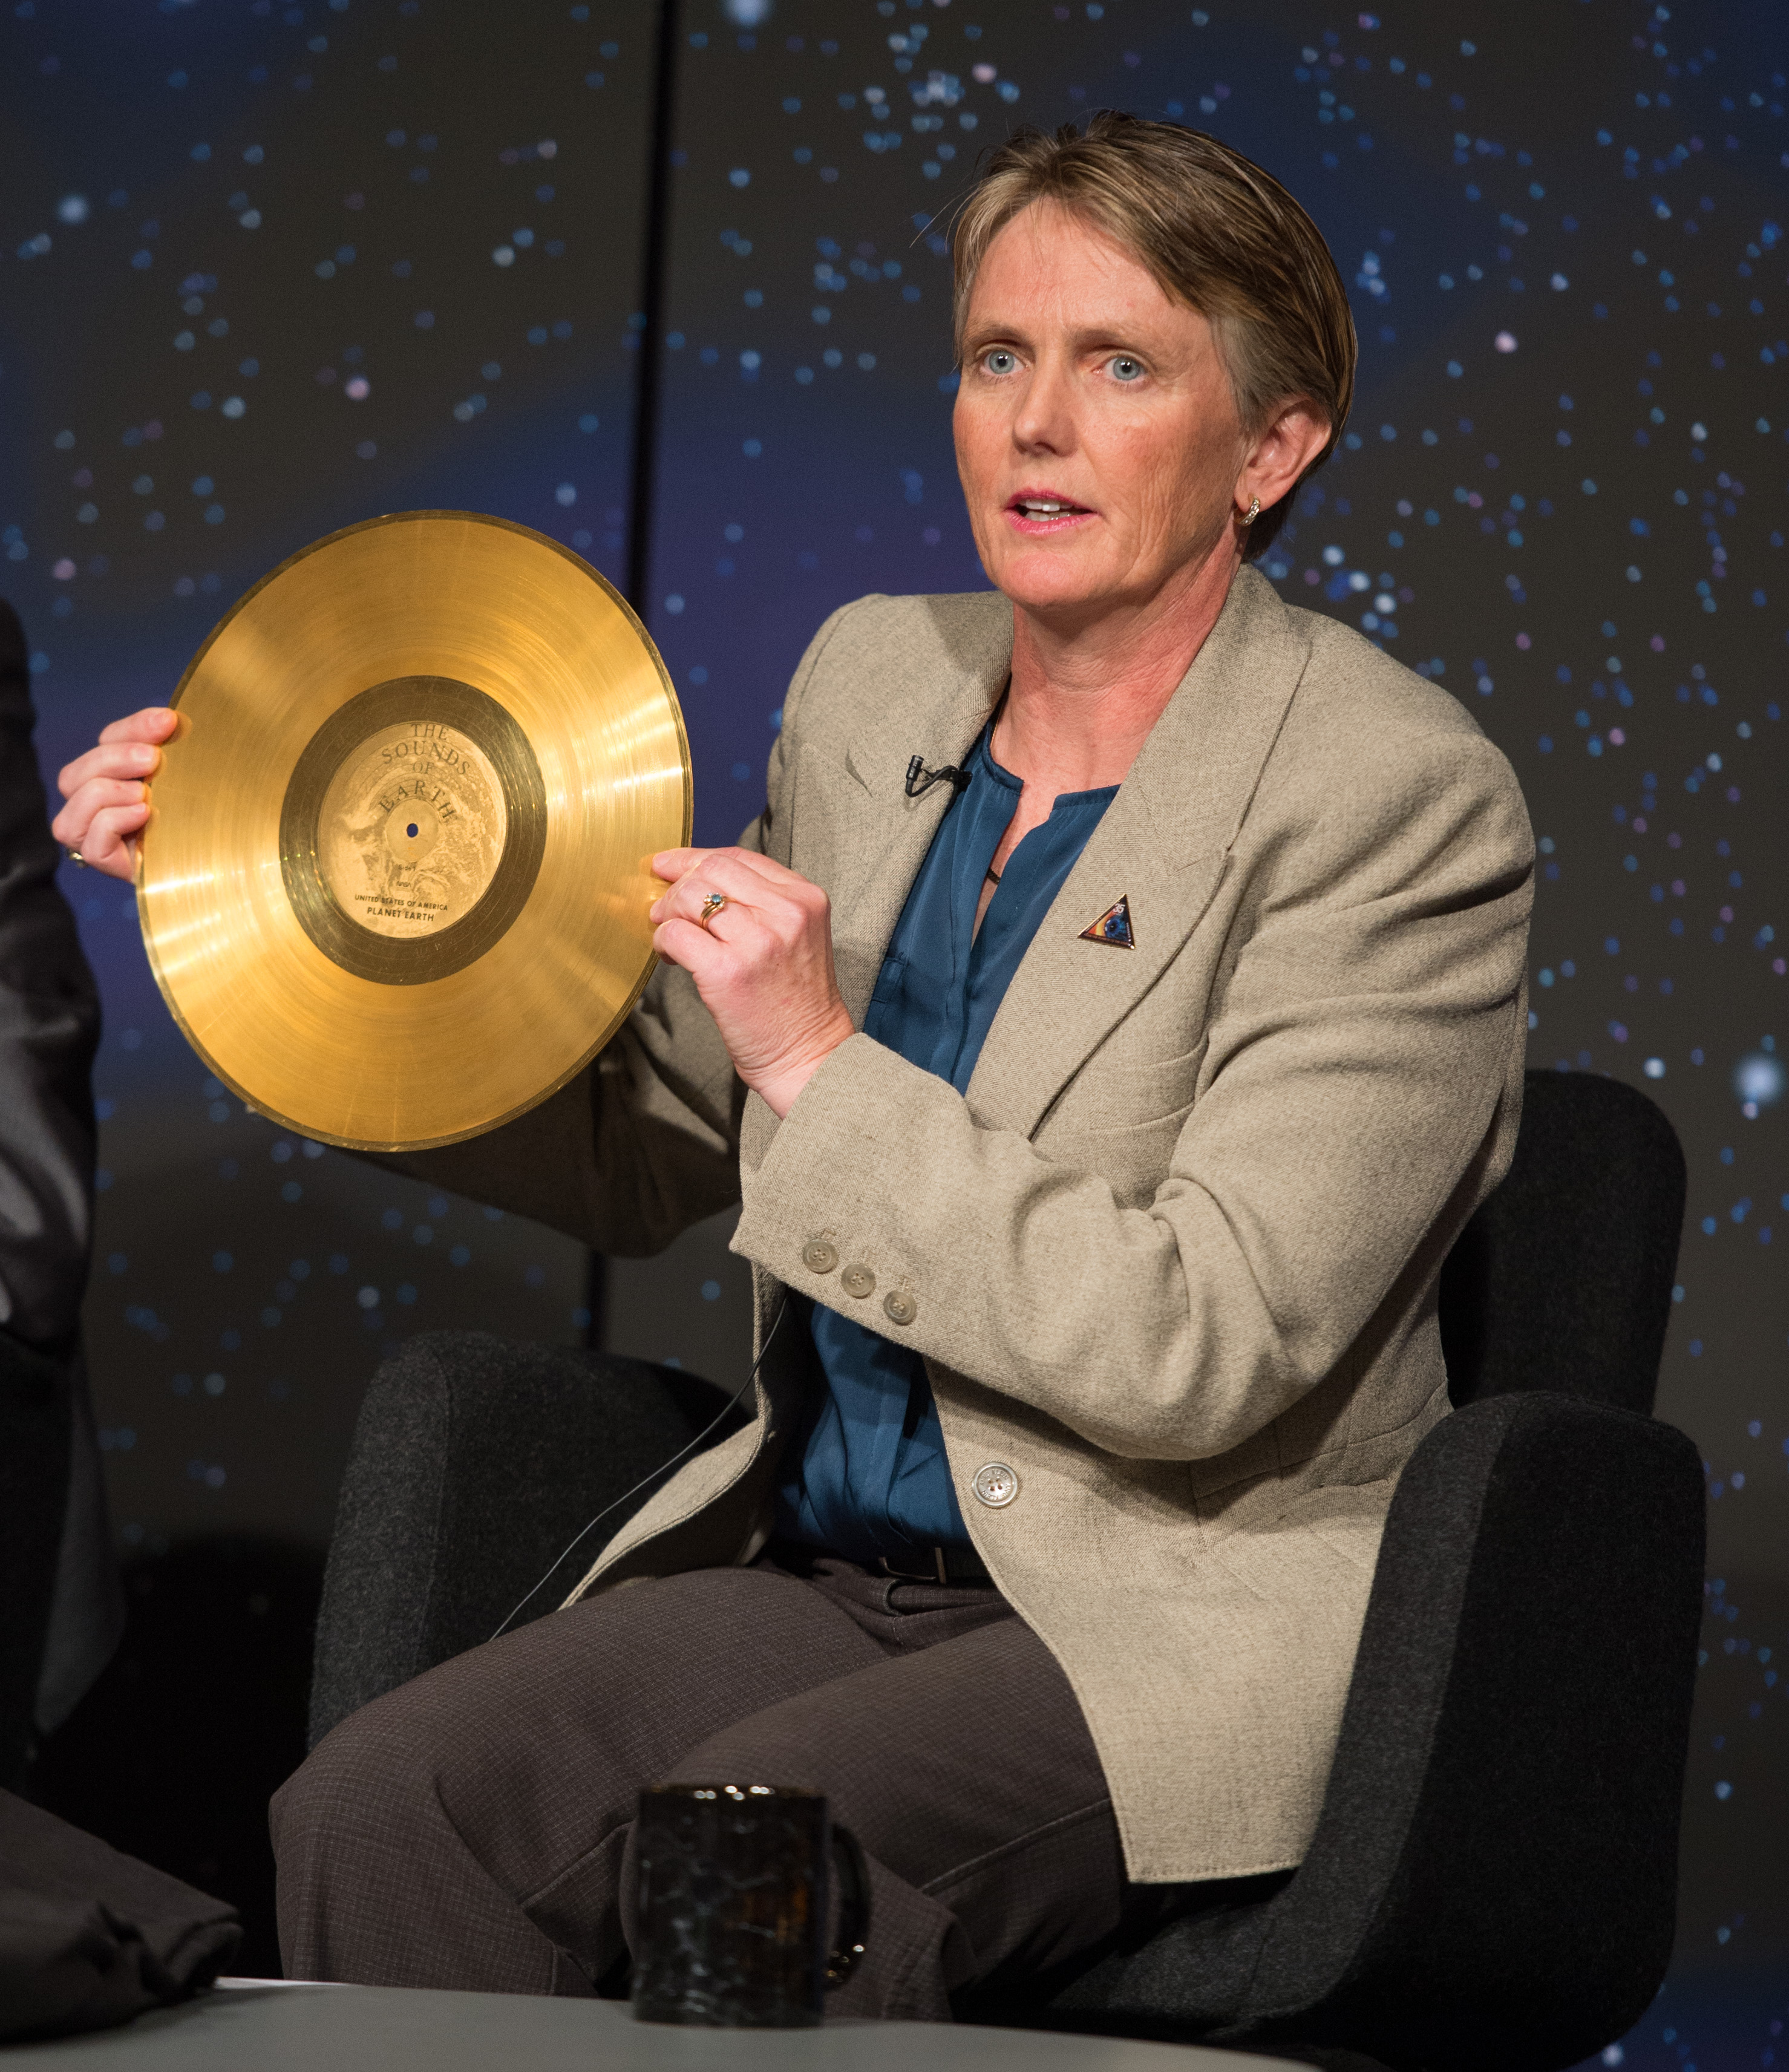 Sept. 12, 2013: Suzanne Dodd Holds Golden Record Replica